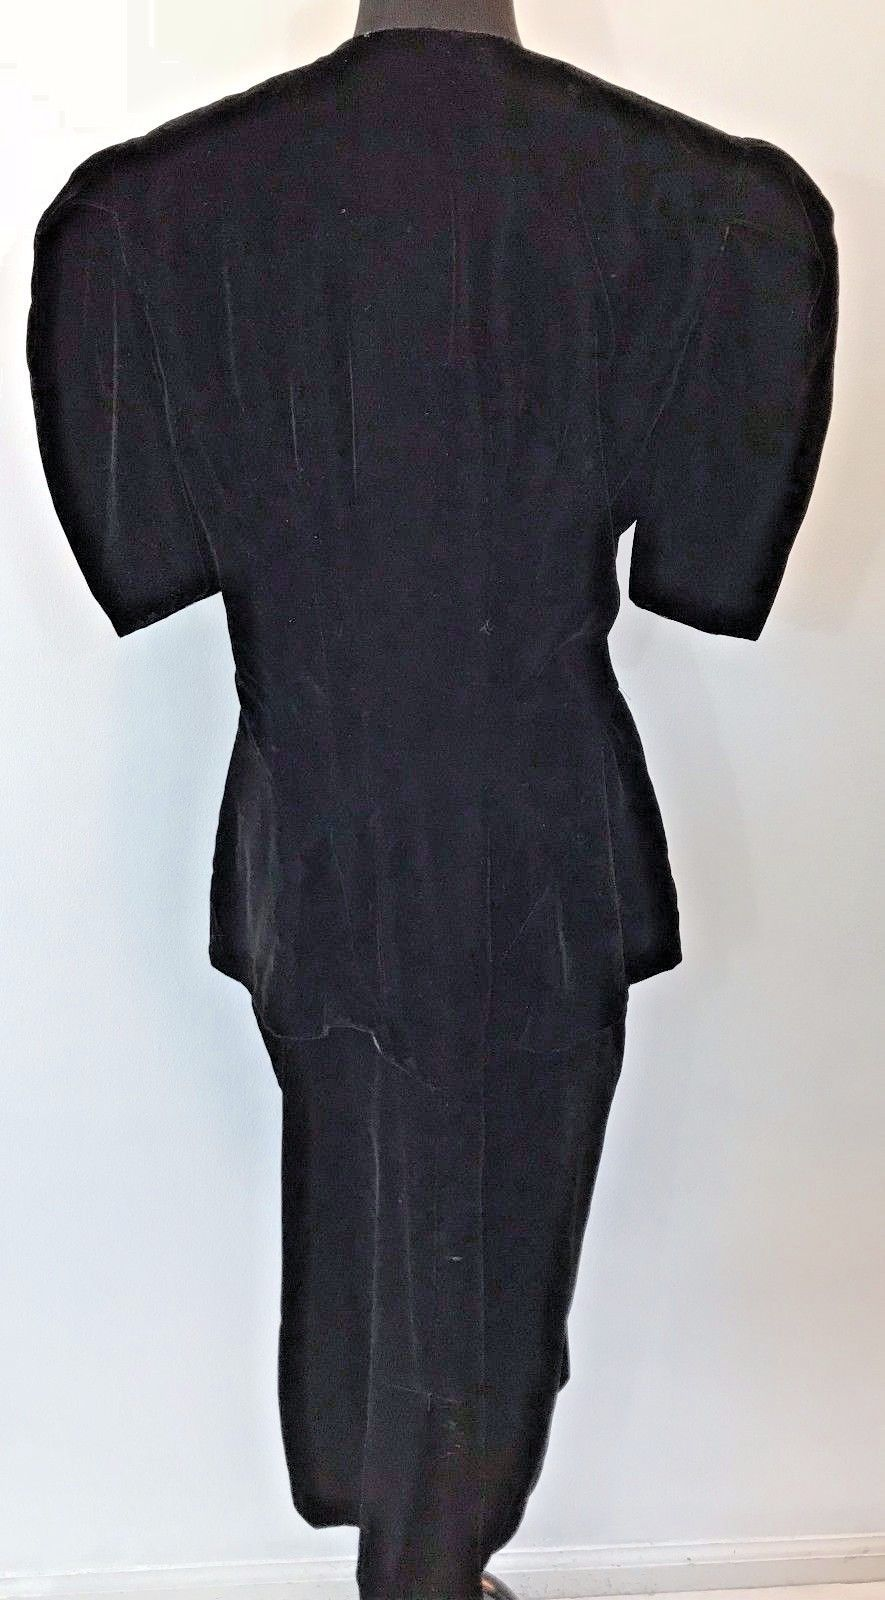 Vintage 1980s REO Originals Black Velvet Peplum Dress size 14 Shoulder Pads DS16